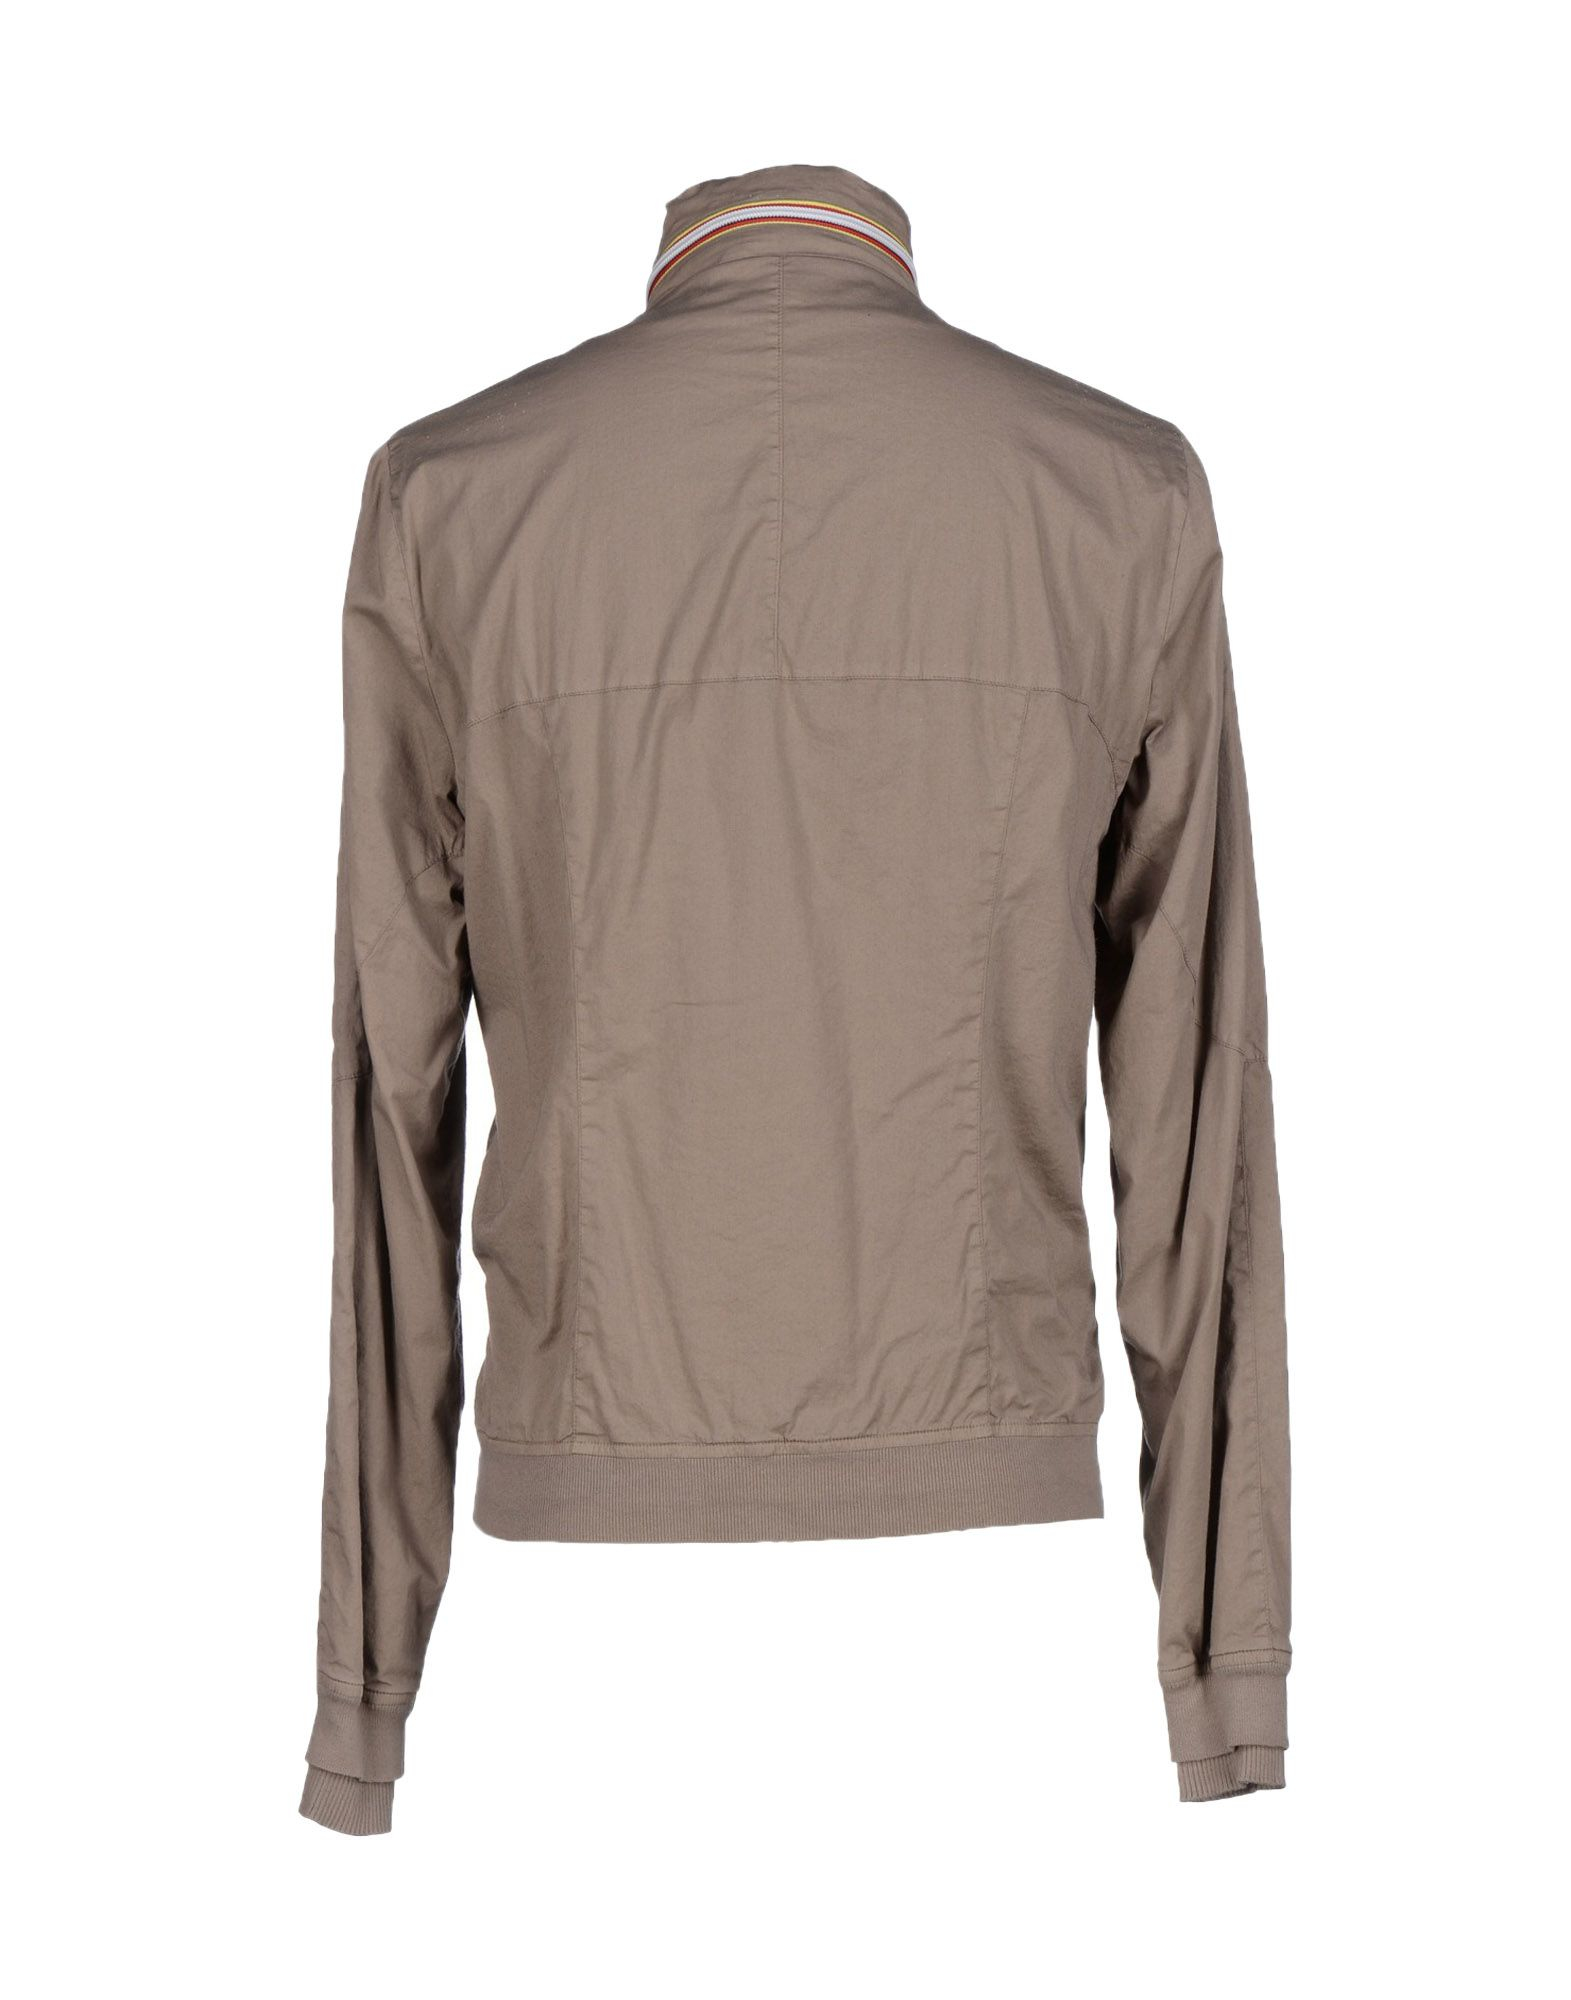 Lyst Gold Bunny Jacket In Natural For Men